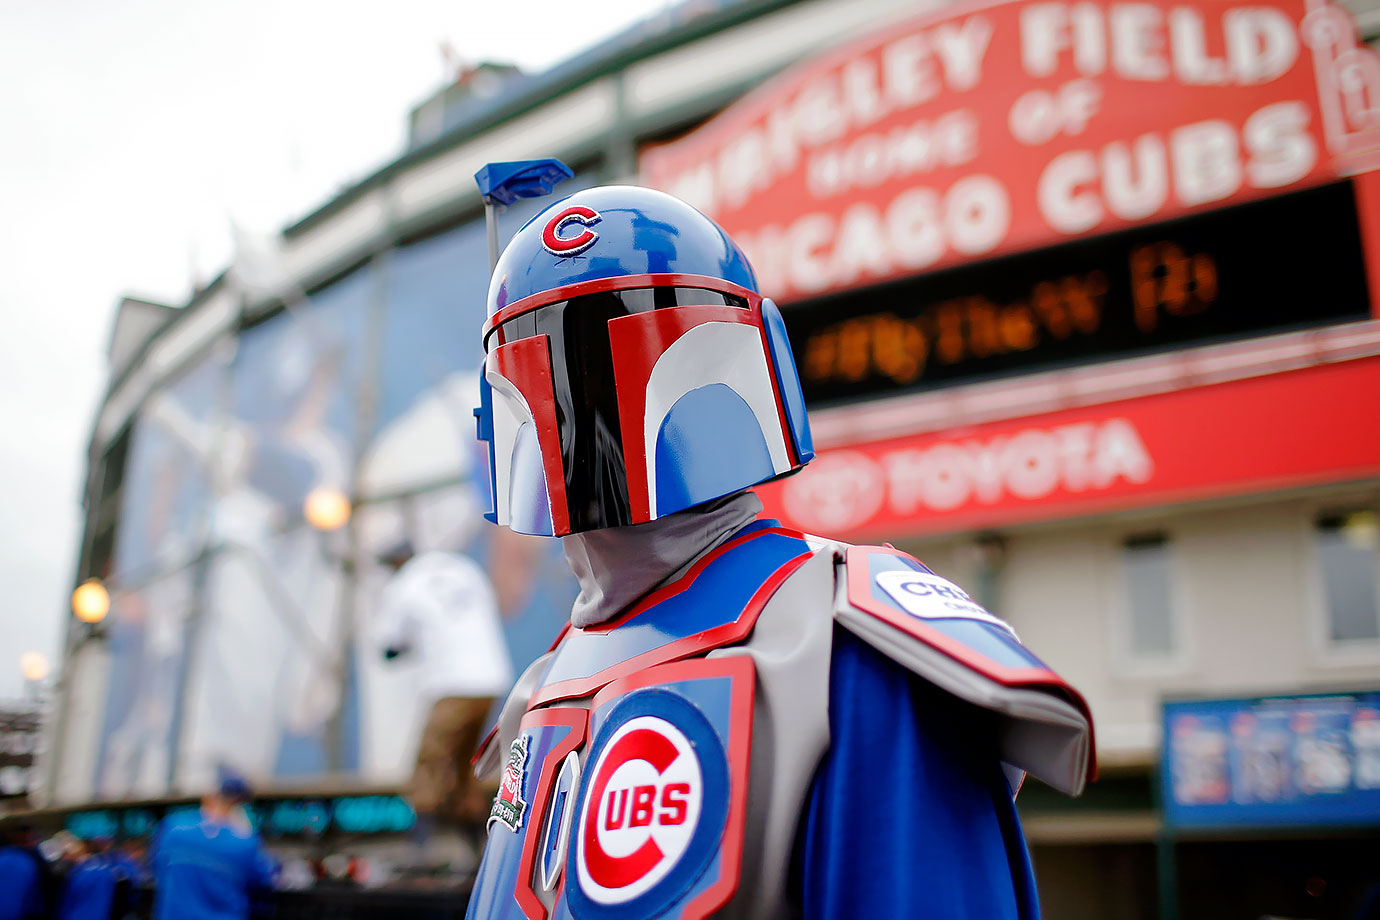 A Chicago Cubs fan dressed as Boba Fett stands in front of Wrigley Field before Game Four of the National League Divisional Series against the St. Louis Cardinals on Oct. 13, 2015 in Chicago.